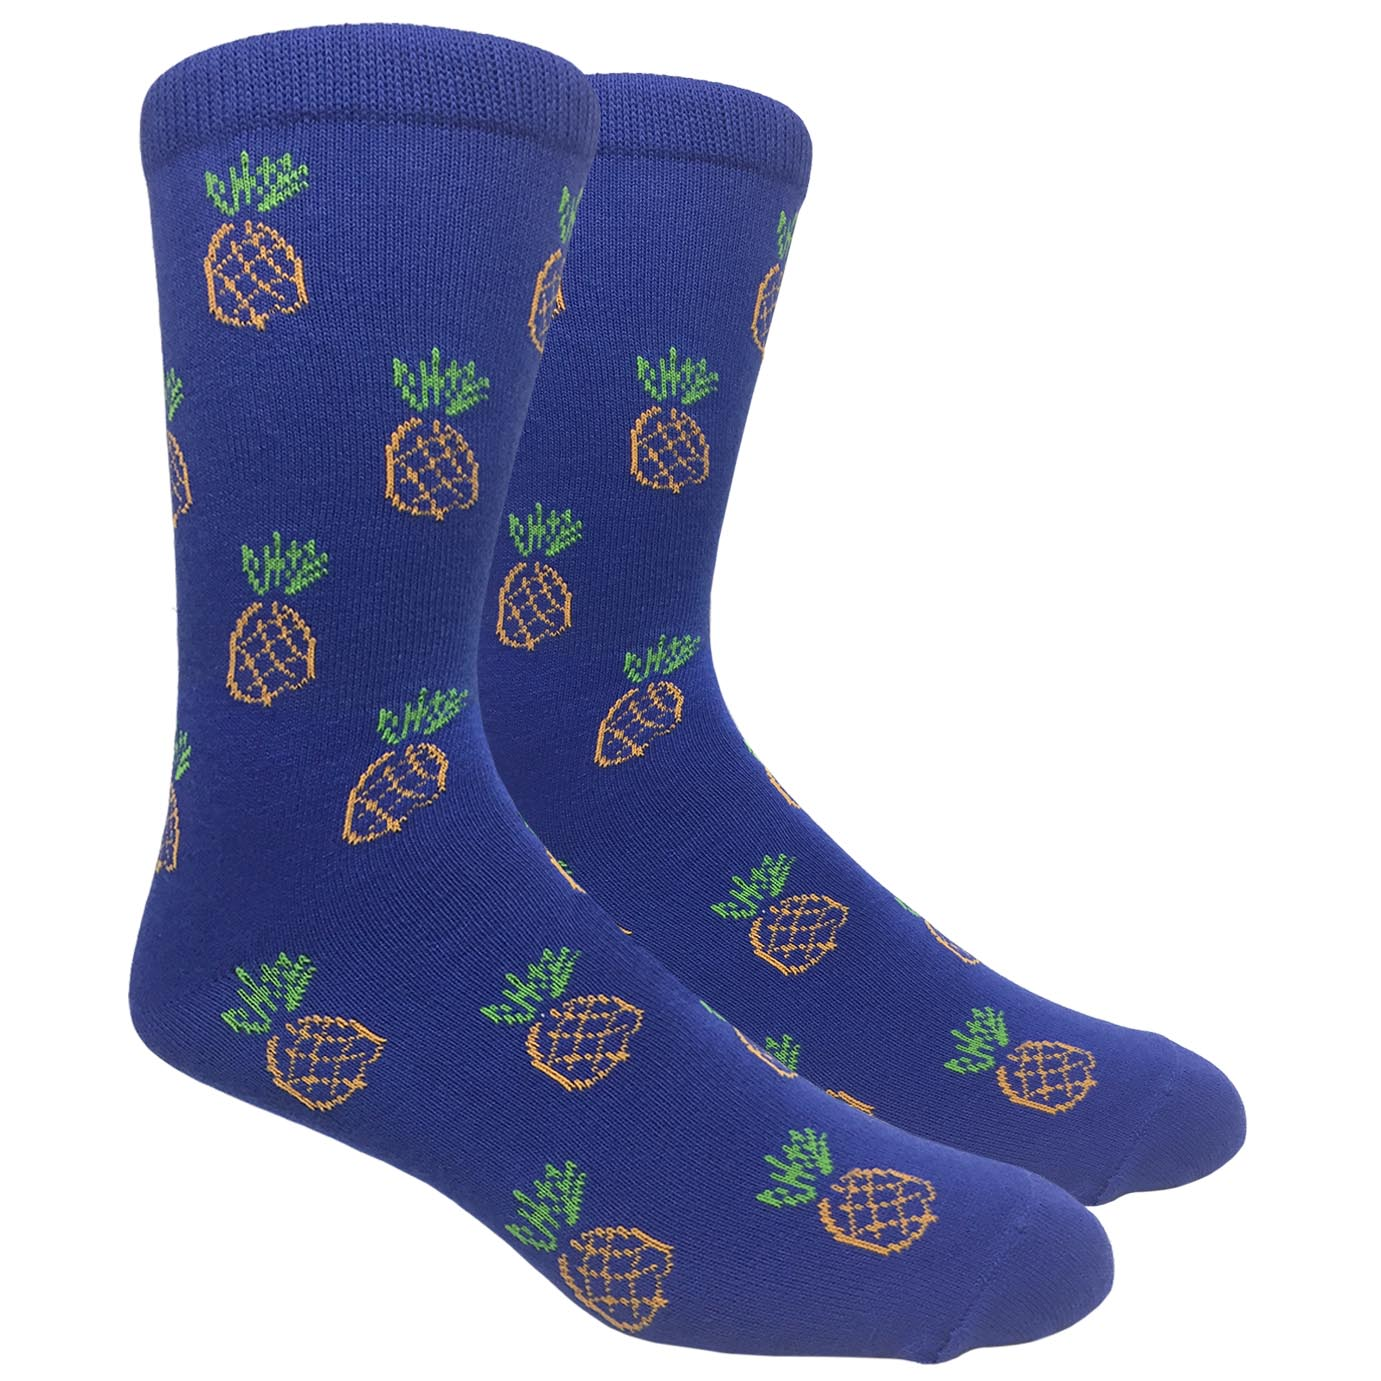 FineFit Black Label Novelty Socks - Blue Pineapples